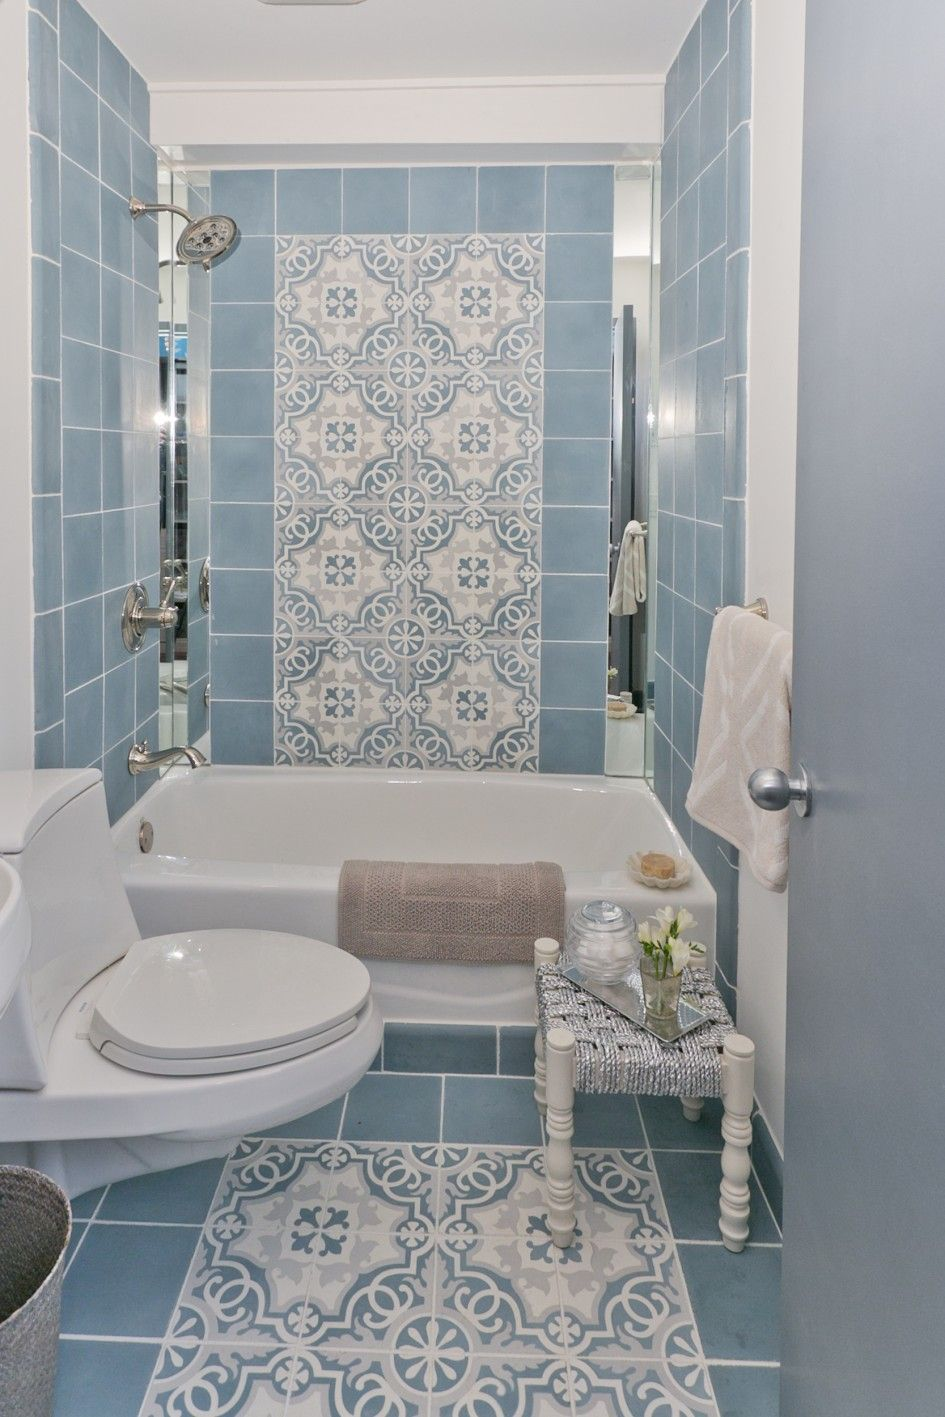 Incredible Outcome To Apply Cute Bathroom Ideas Installation Step By Step